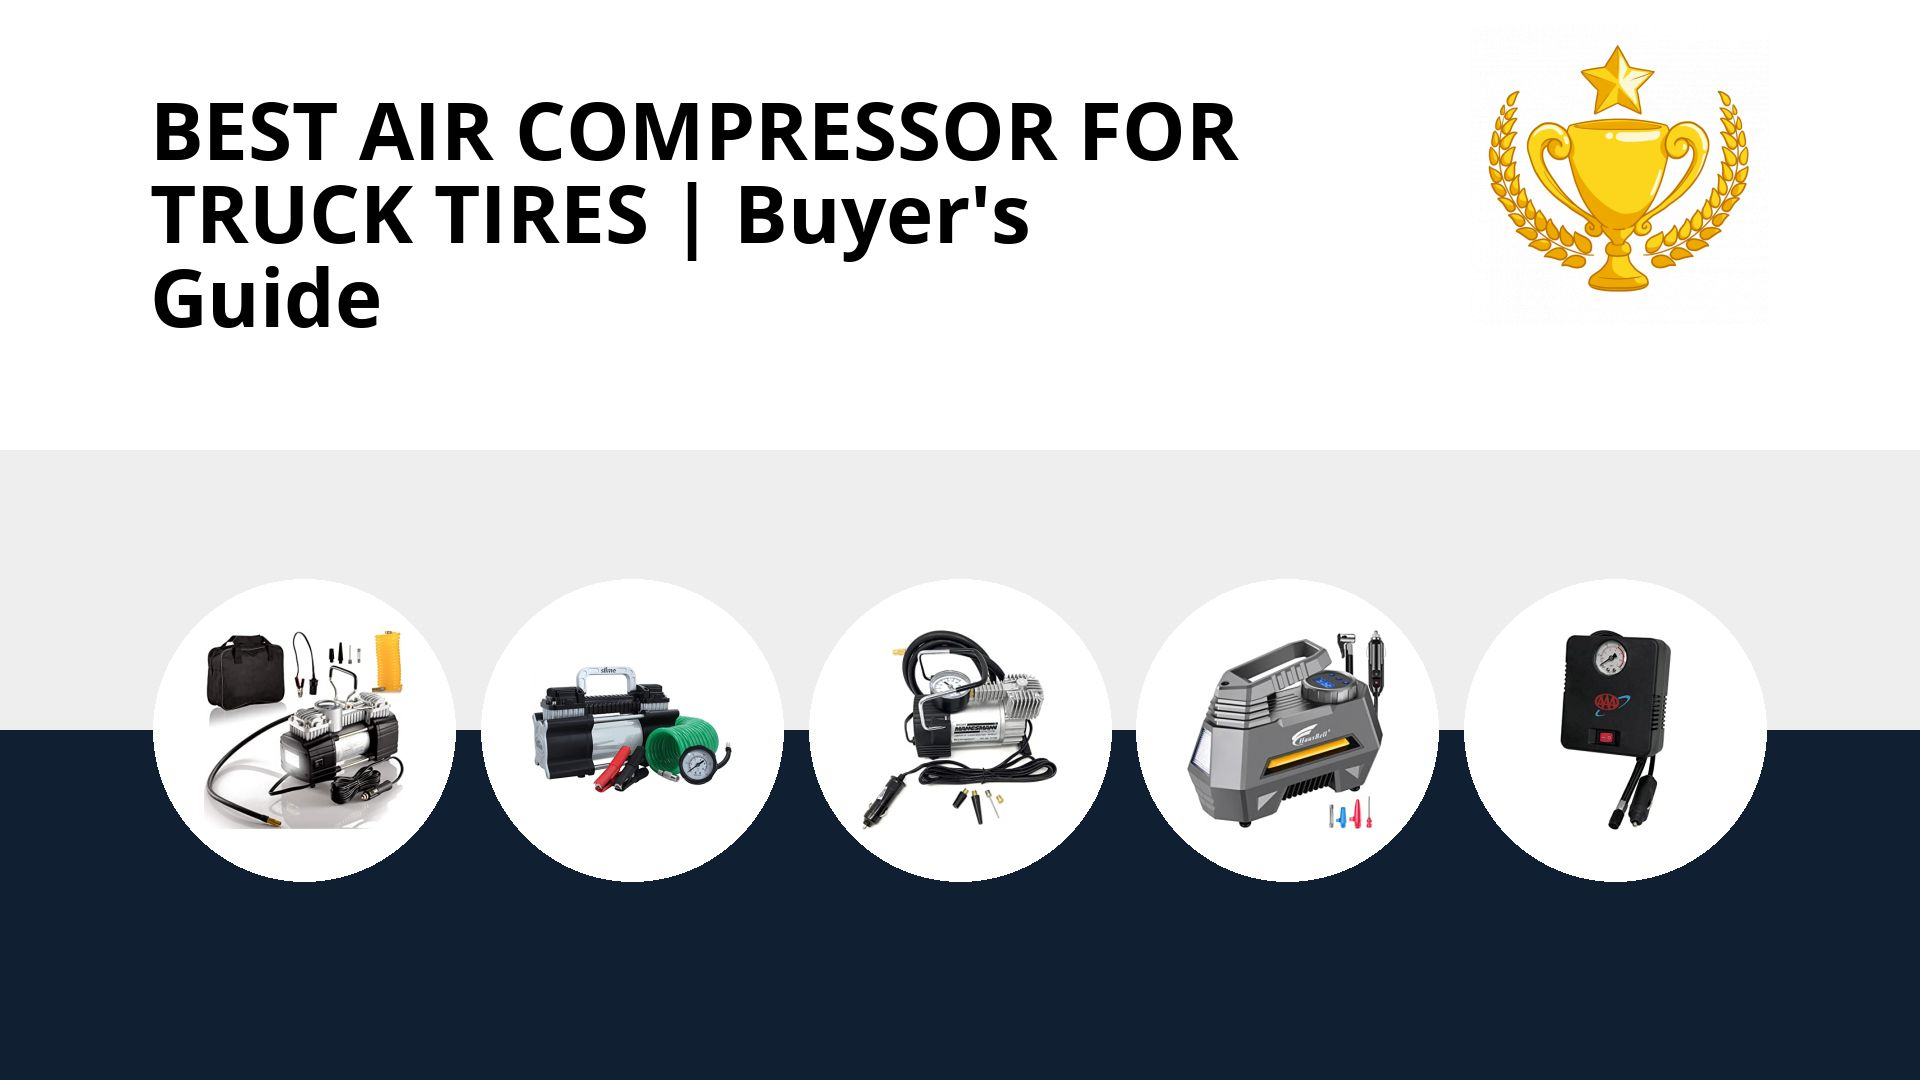 Best Air Compressor For Truck Tires: image